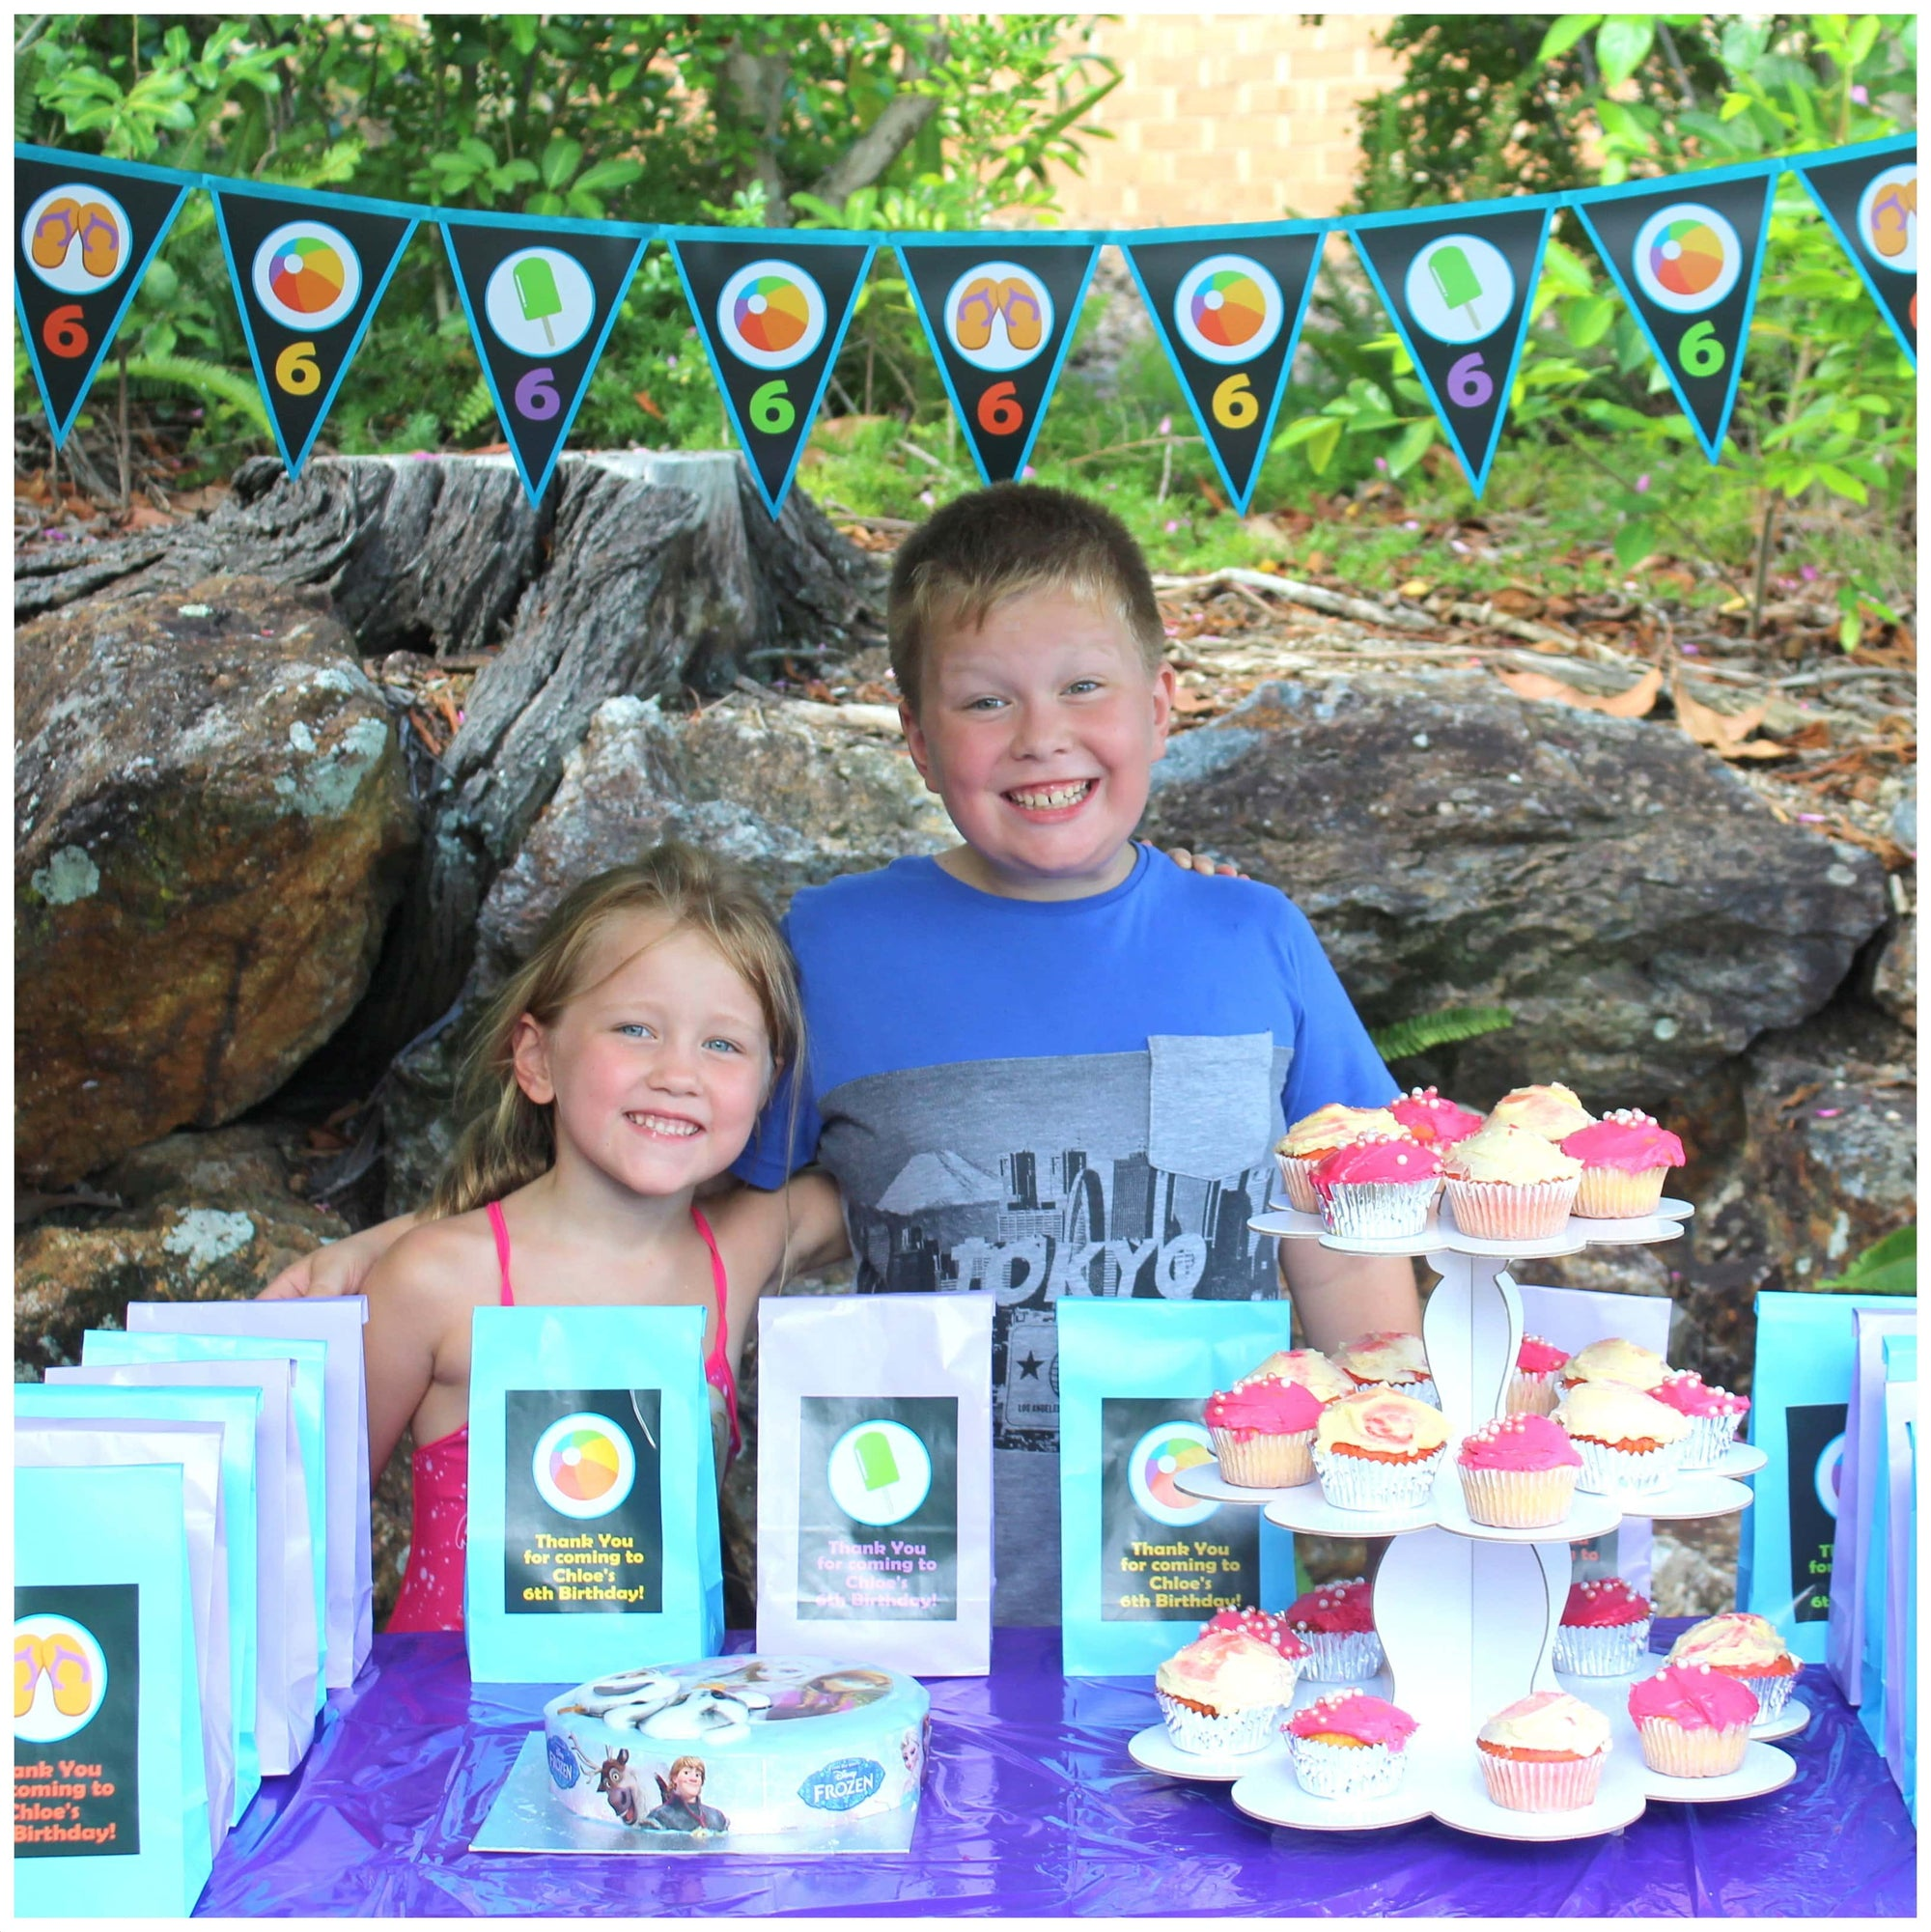 Awesome Pool Party Birthday Ideas & Photos